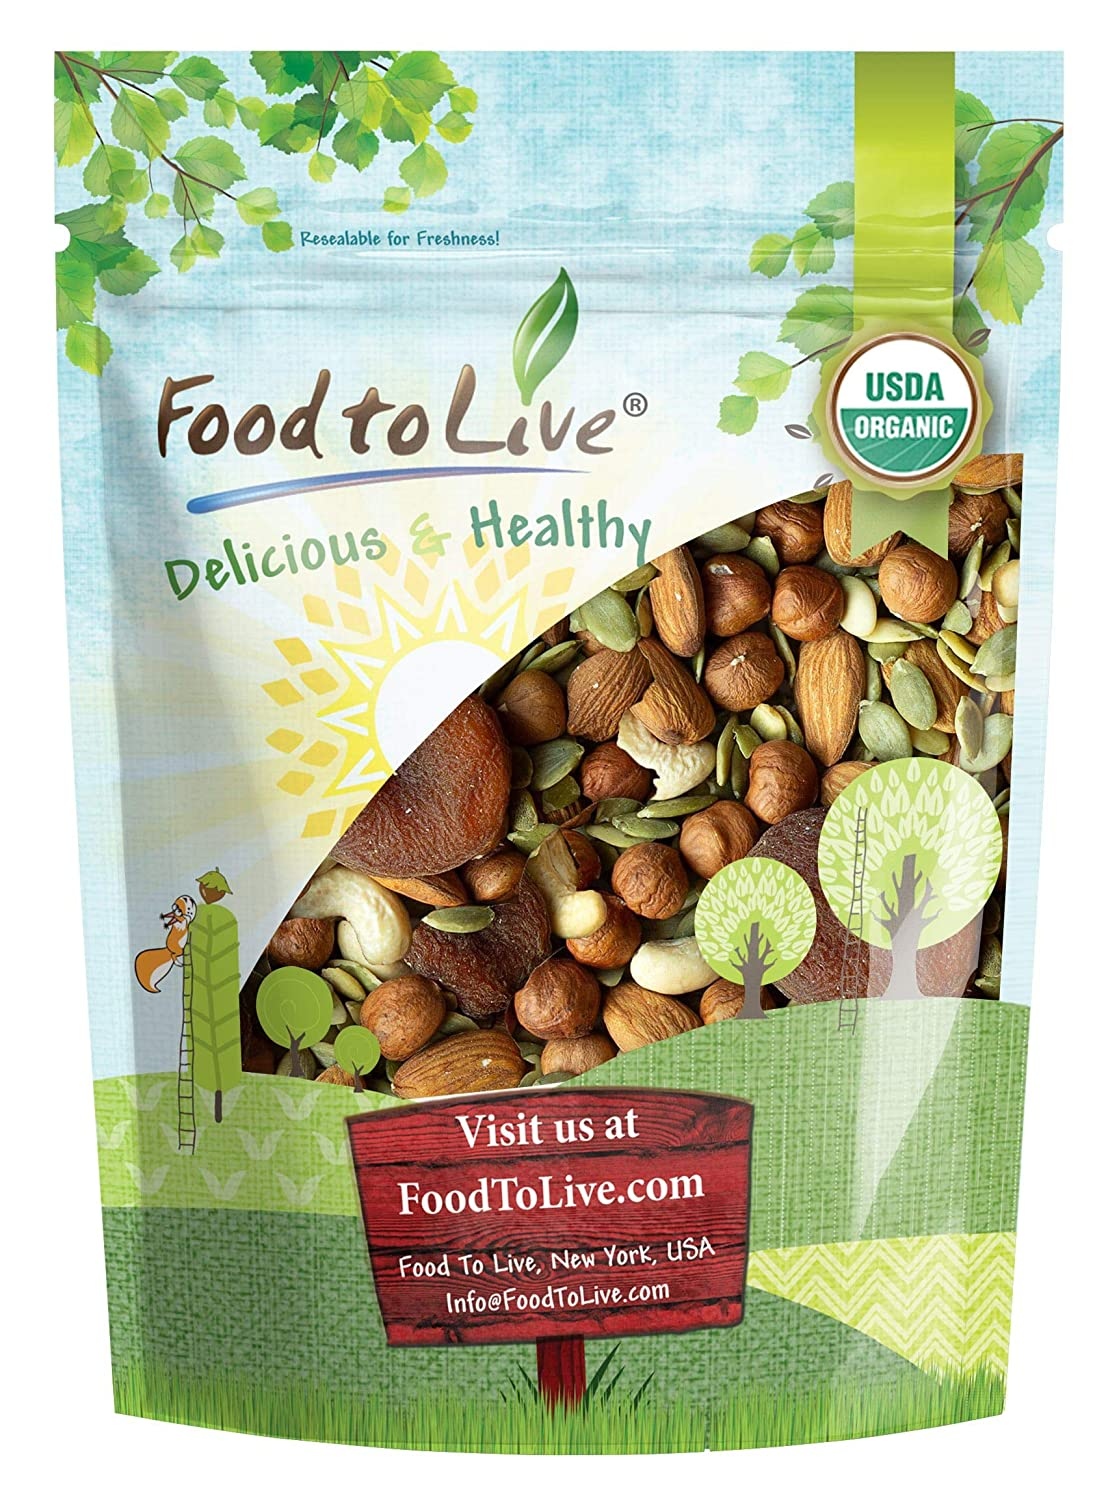 Organic Active Life Trail Mix, 2 Pounds — Raw and Non-GMO Snack Mix Contains Cashews, Pumpkin Seeds, Apricots, Hazelnuts, Almonds. Vegan Superfood, Kosher, No Added Sugar, Bulk